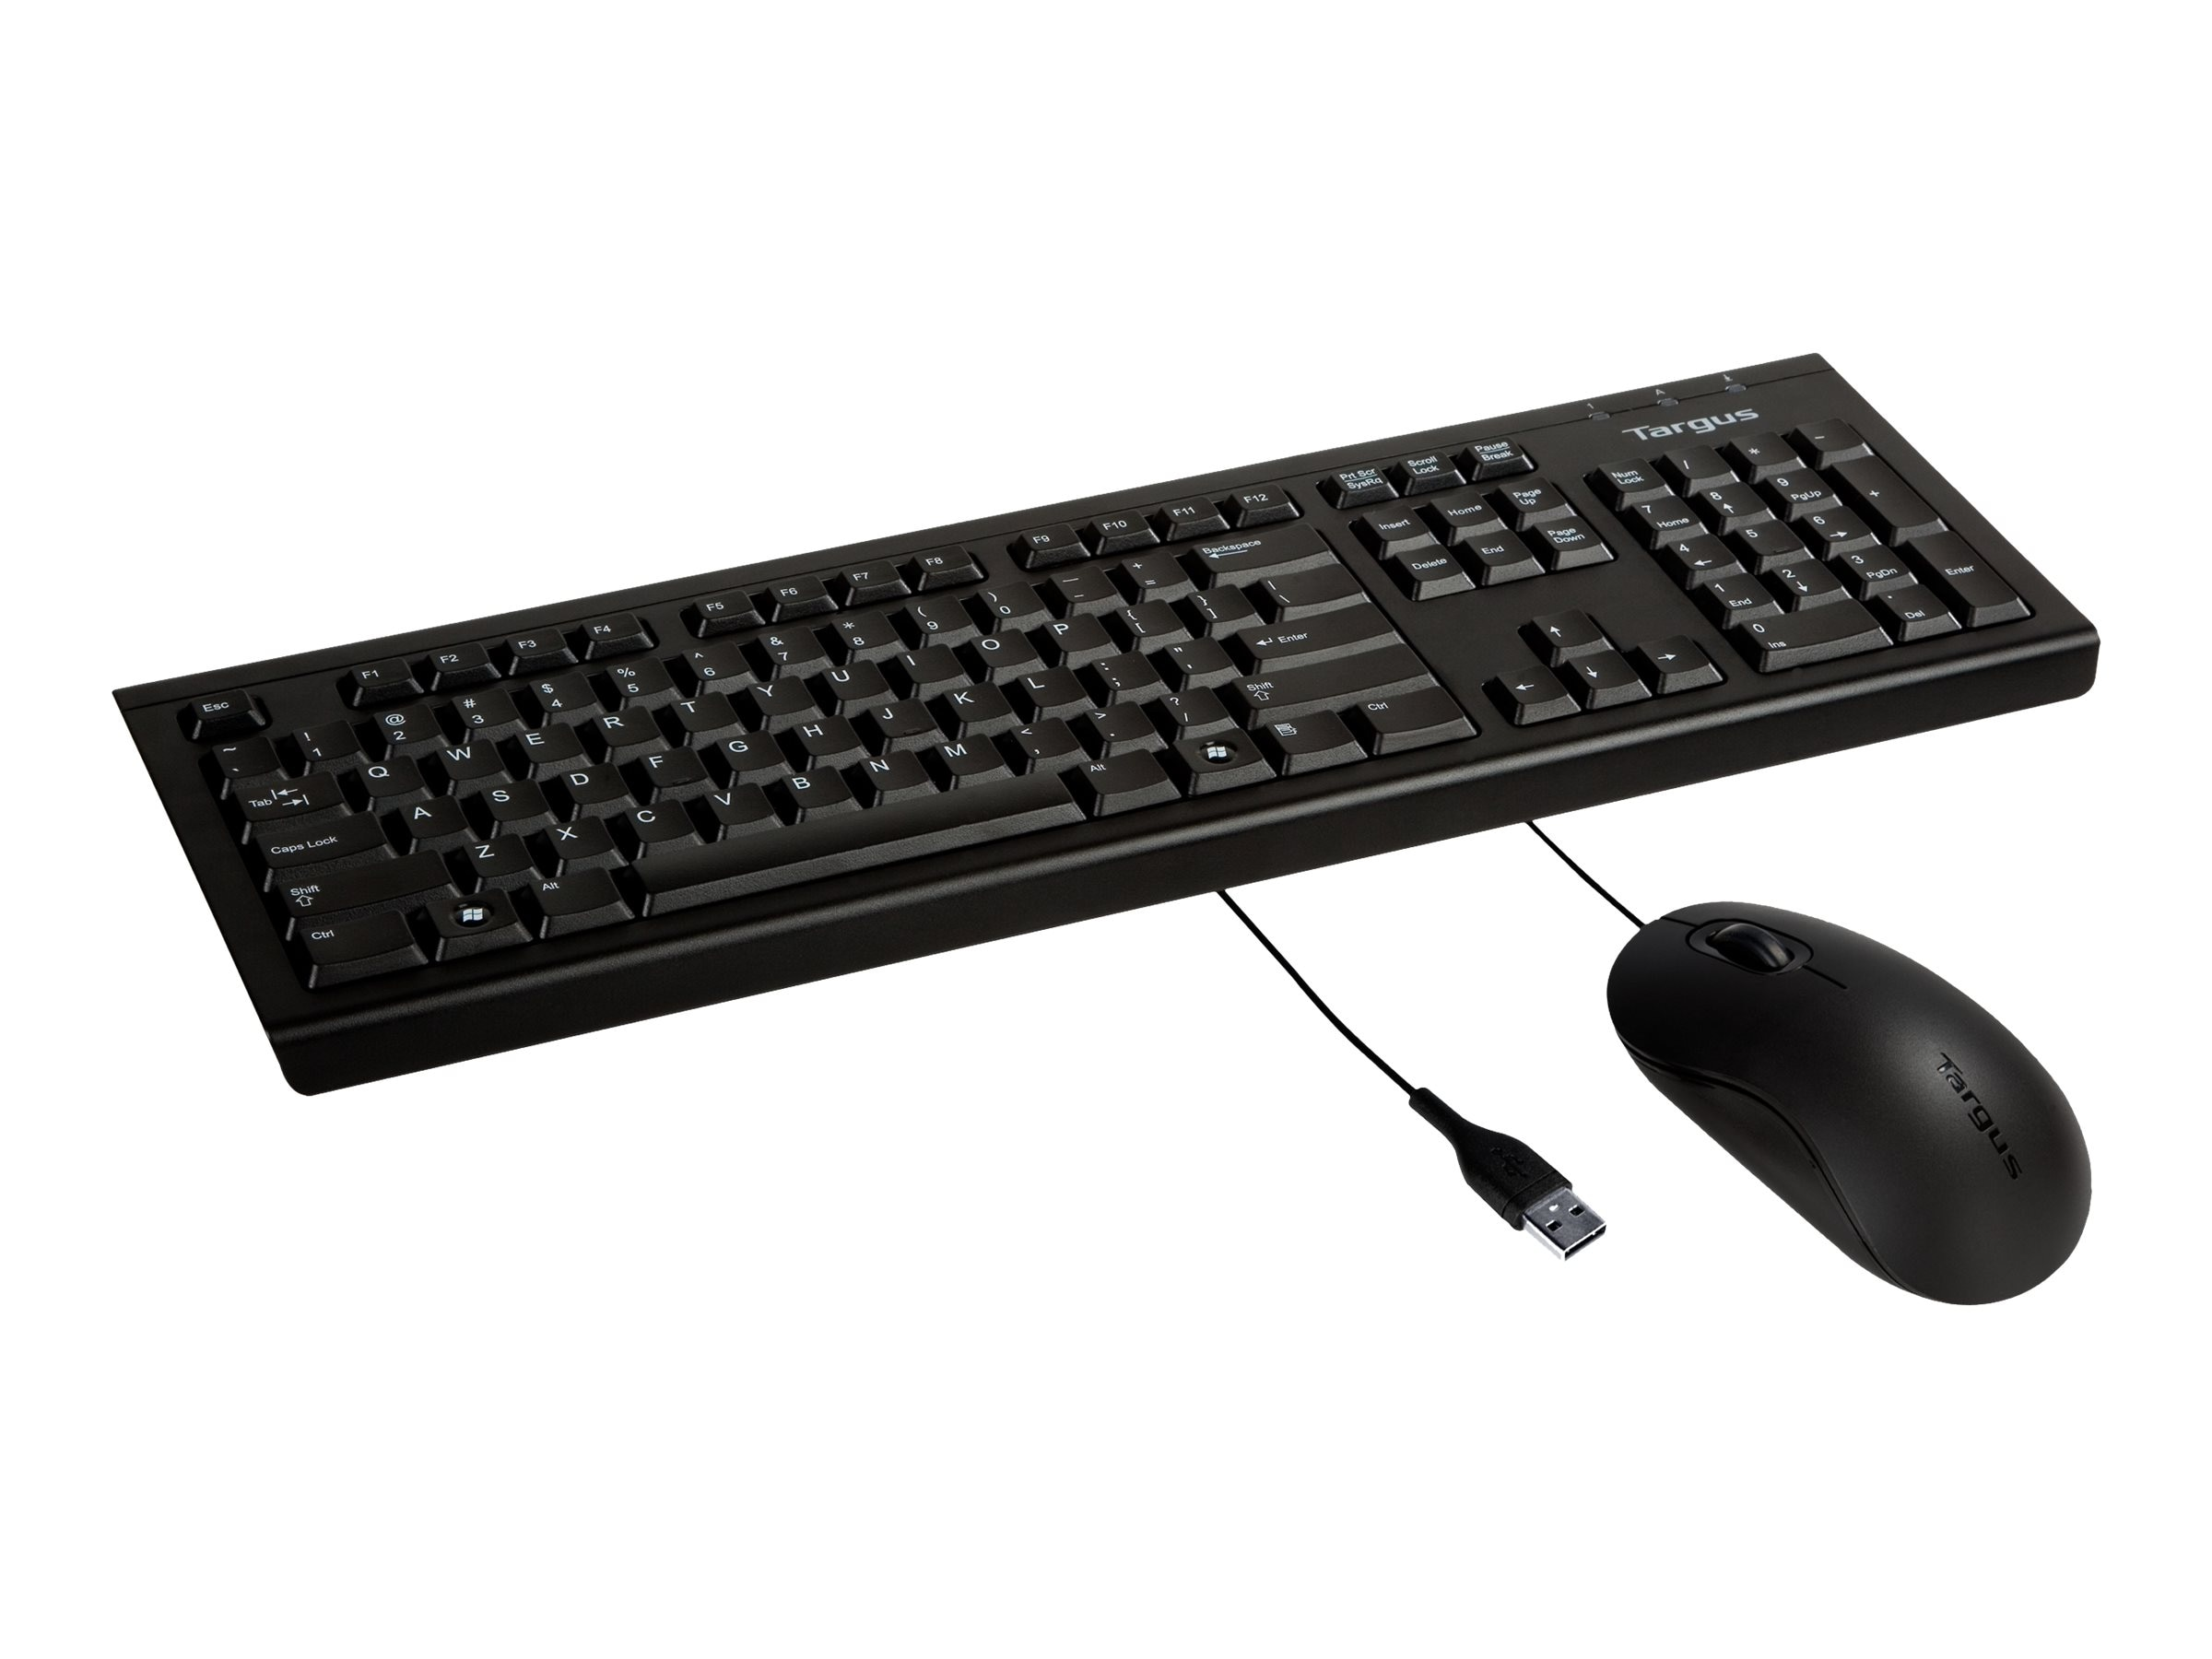 Targus Corporate Keyboard plus 3-button USB Full Size Optical Mmouse, BUS0067B